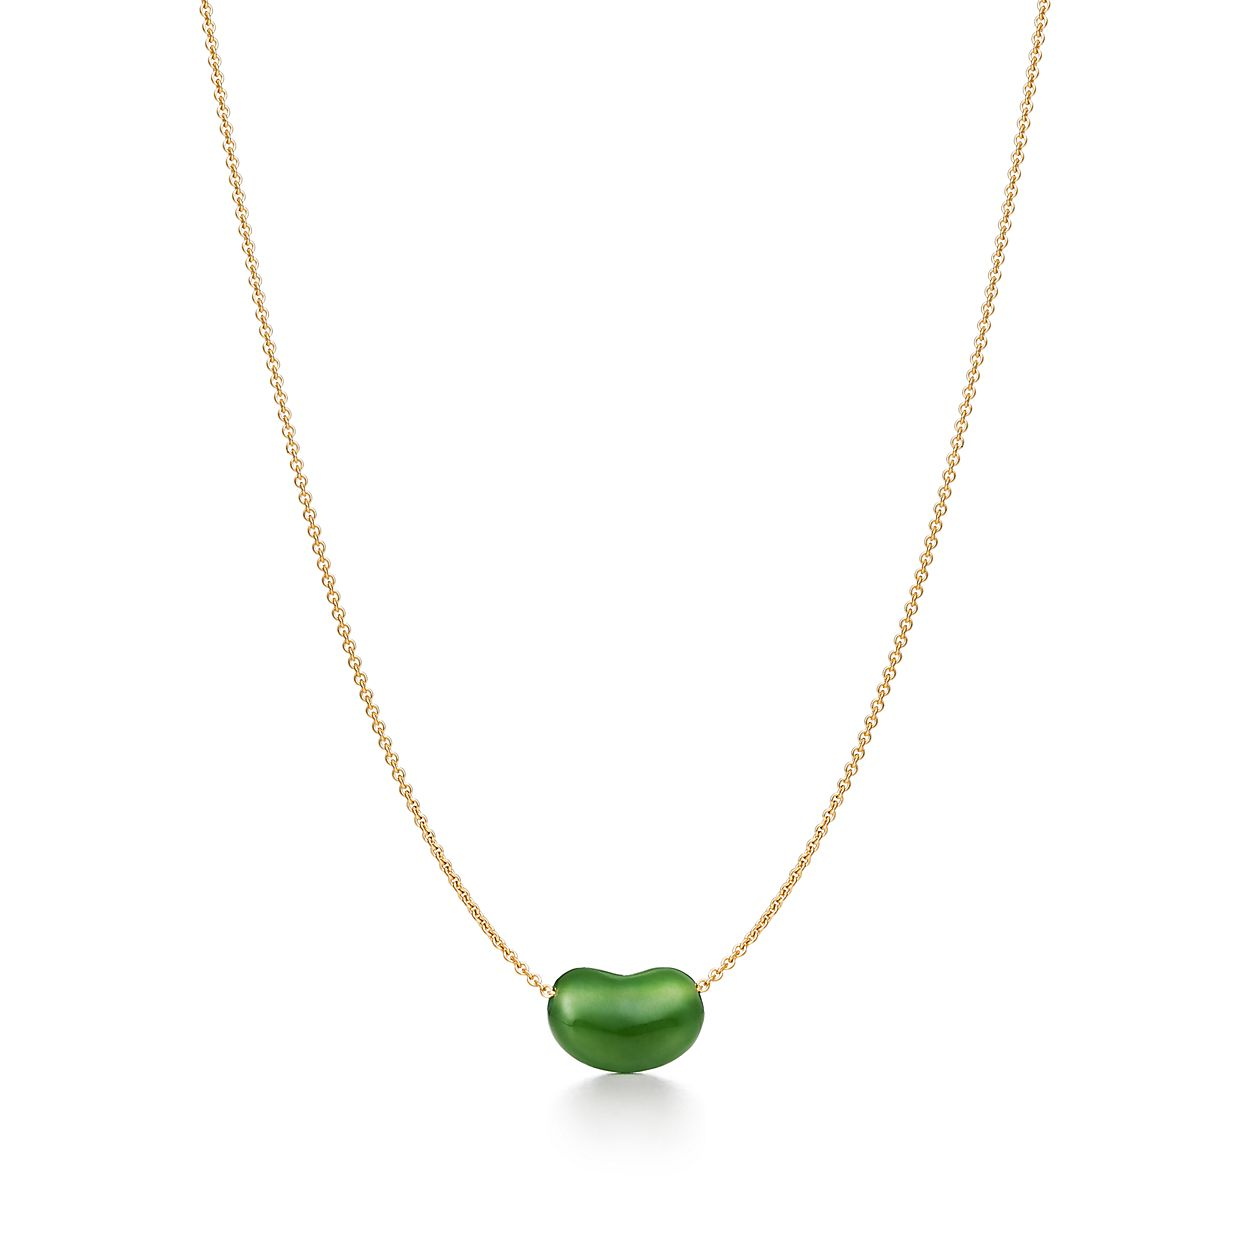 by necklace howlite christine etsy tues photography dec jewelry jade smith large green artisan luxury